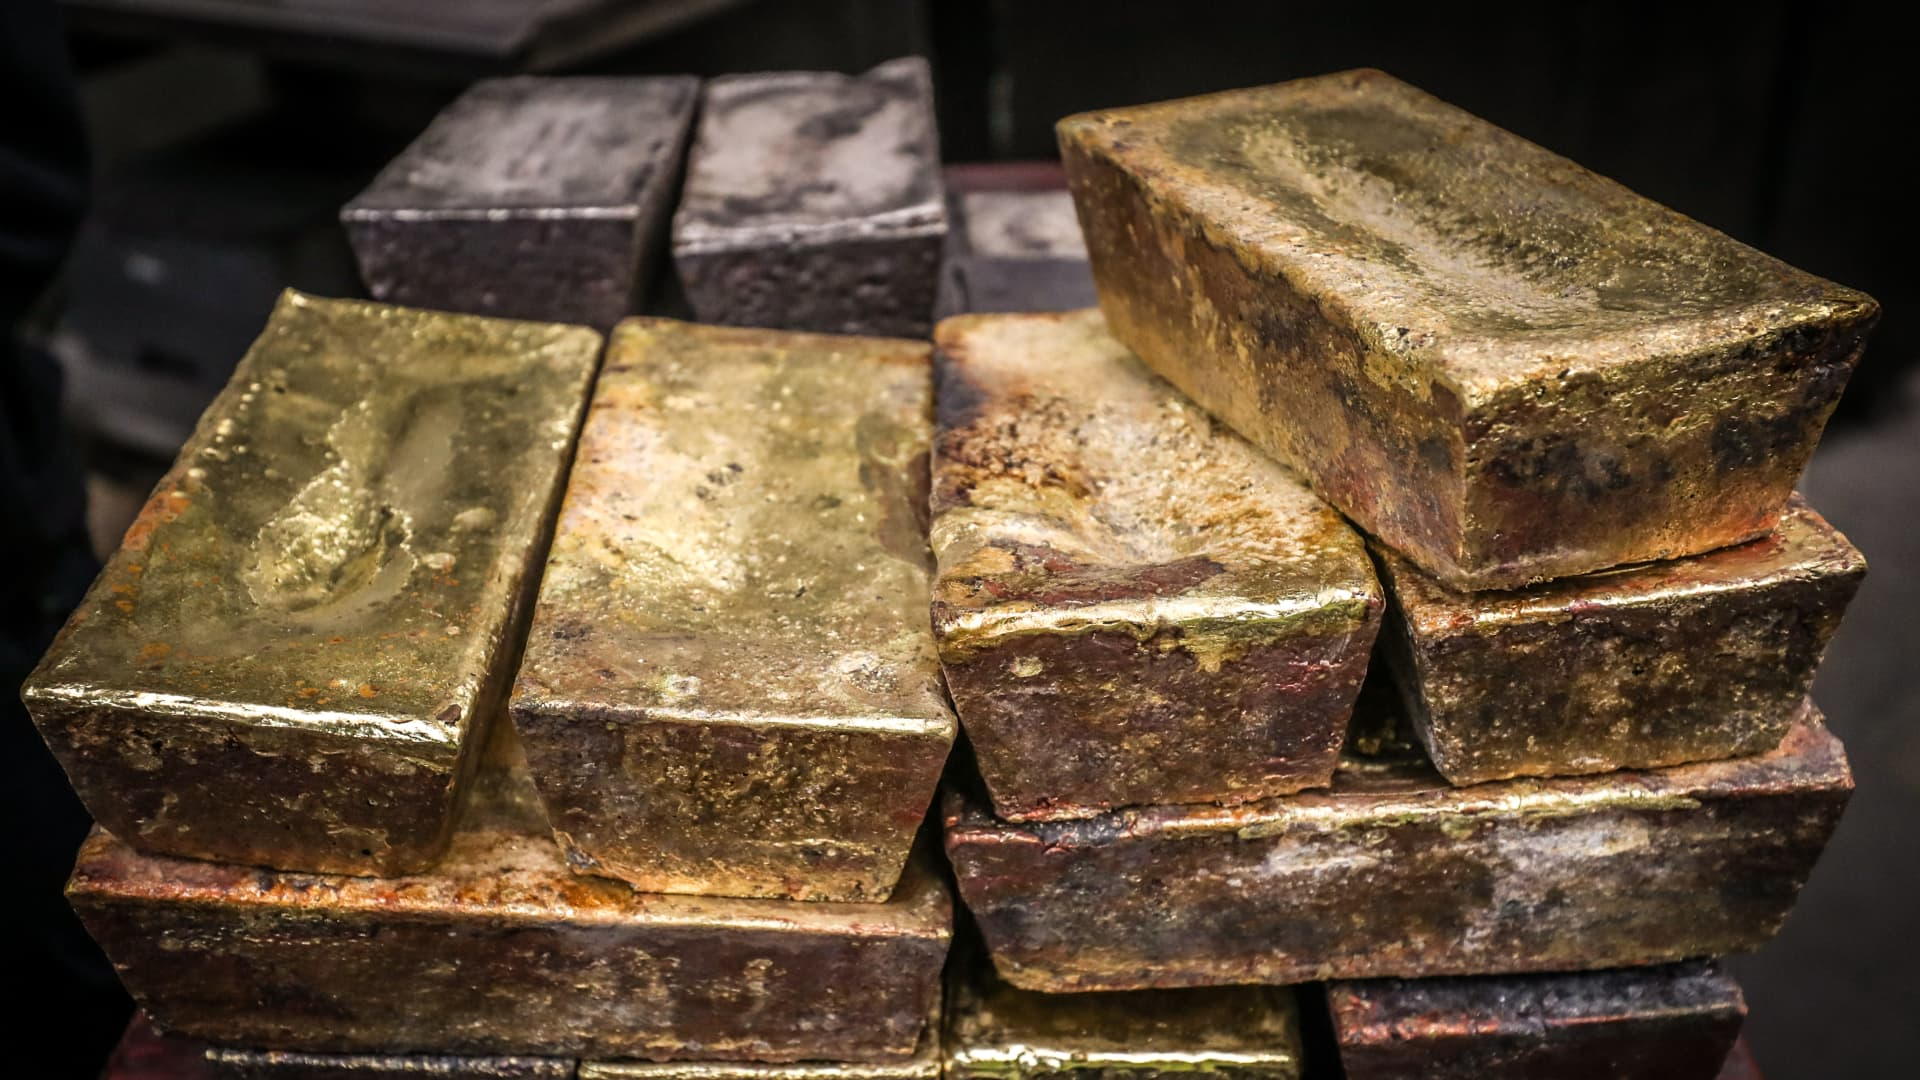 Twenty kilogram gold and silver bricks sit at the ABC Refinery smelter in Sydney, New South Wales, Australia, on Thursday, July 2, 2020.